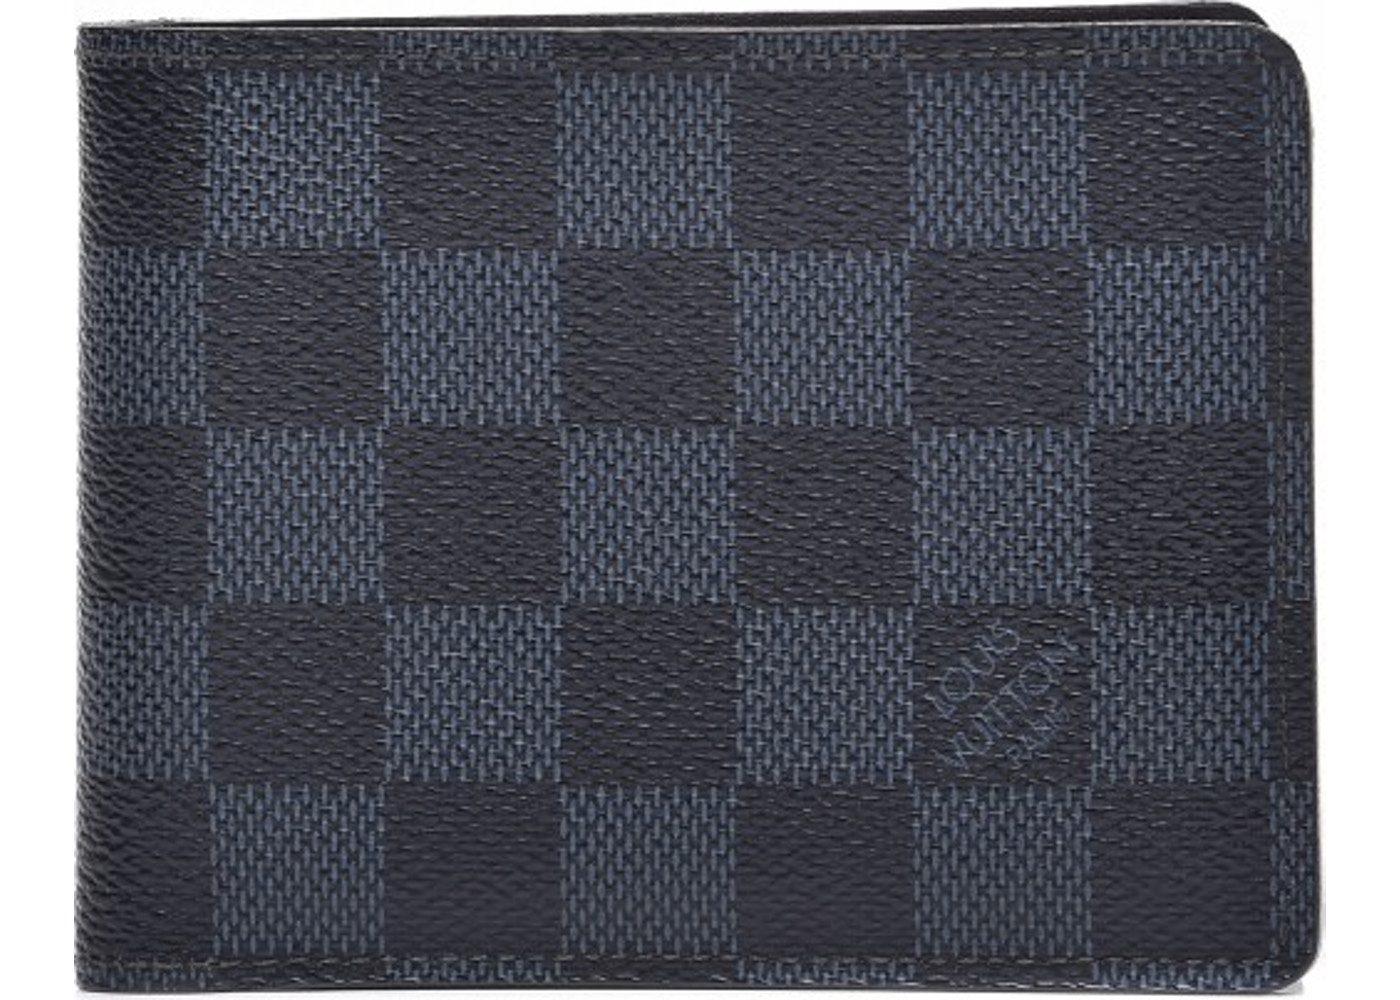 Louis Vuitton Multiple Wallet Damier Cobalt Black. Damier Cobalt Black f0f96dbd9e1